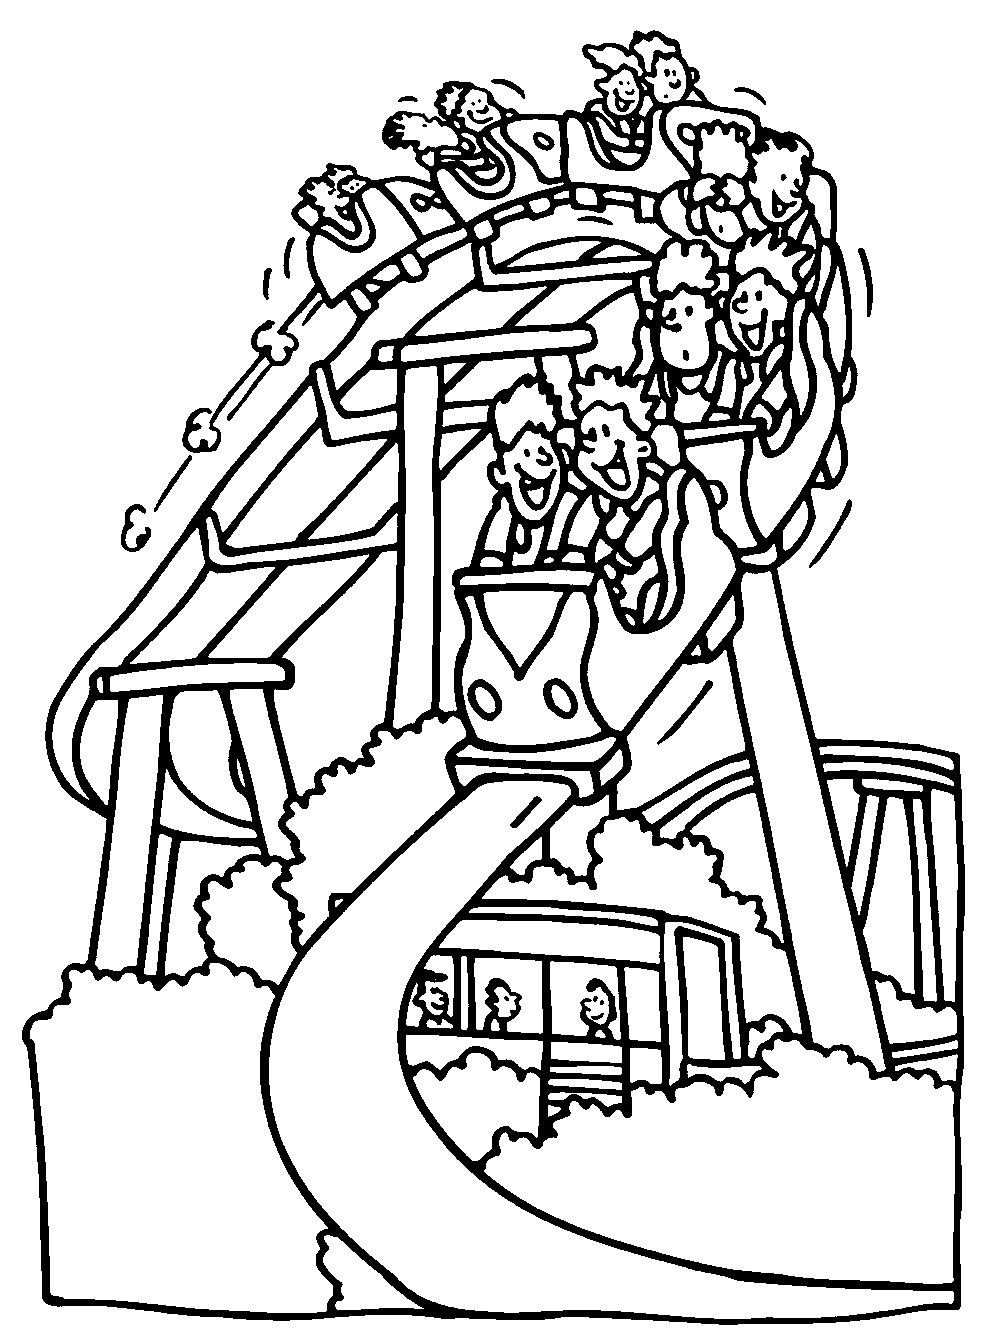 Colouring pages for november - Picture Miscellaneous Coloring Sheets